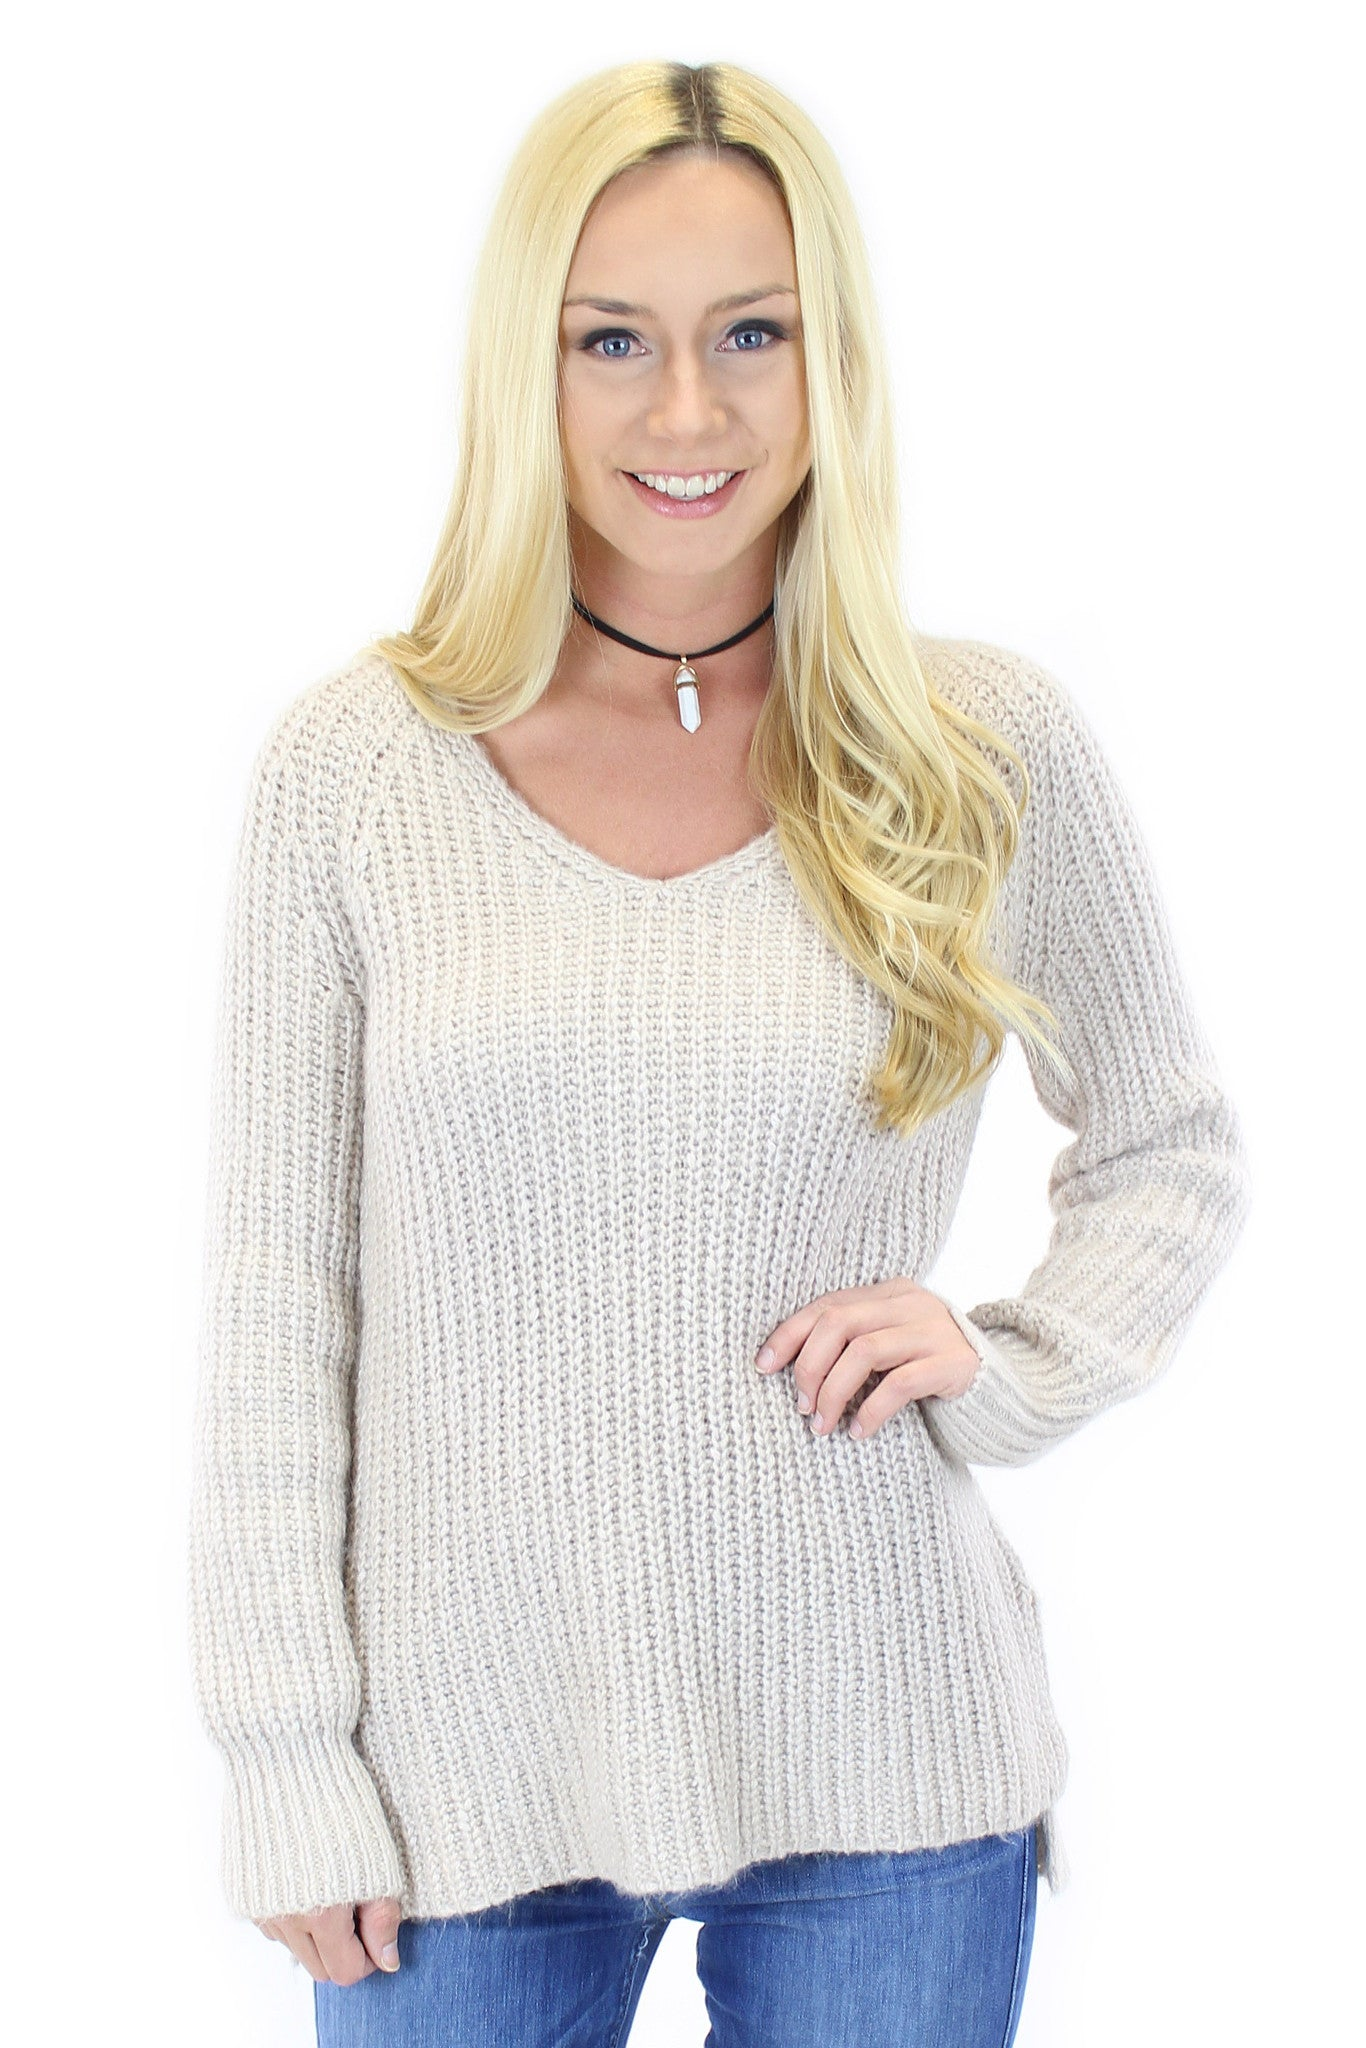 sanctuary | sequoia v neck sweater in marled champagne - klōthe - 2